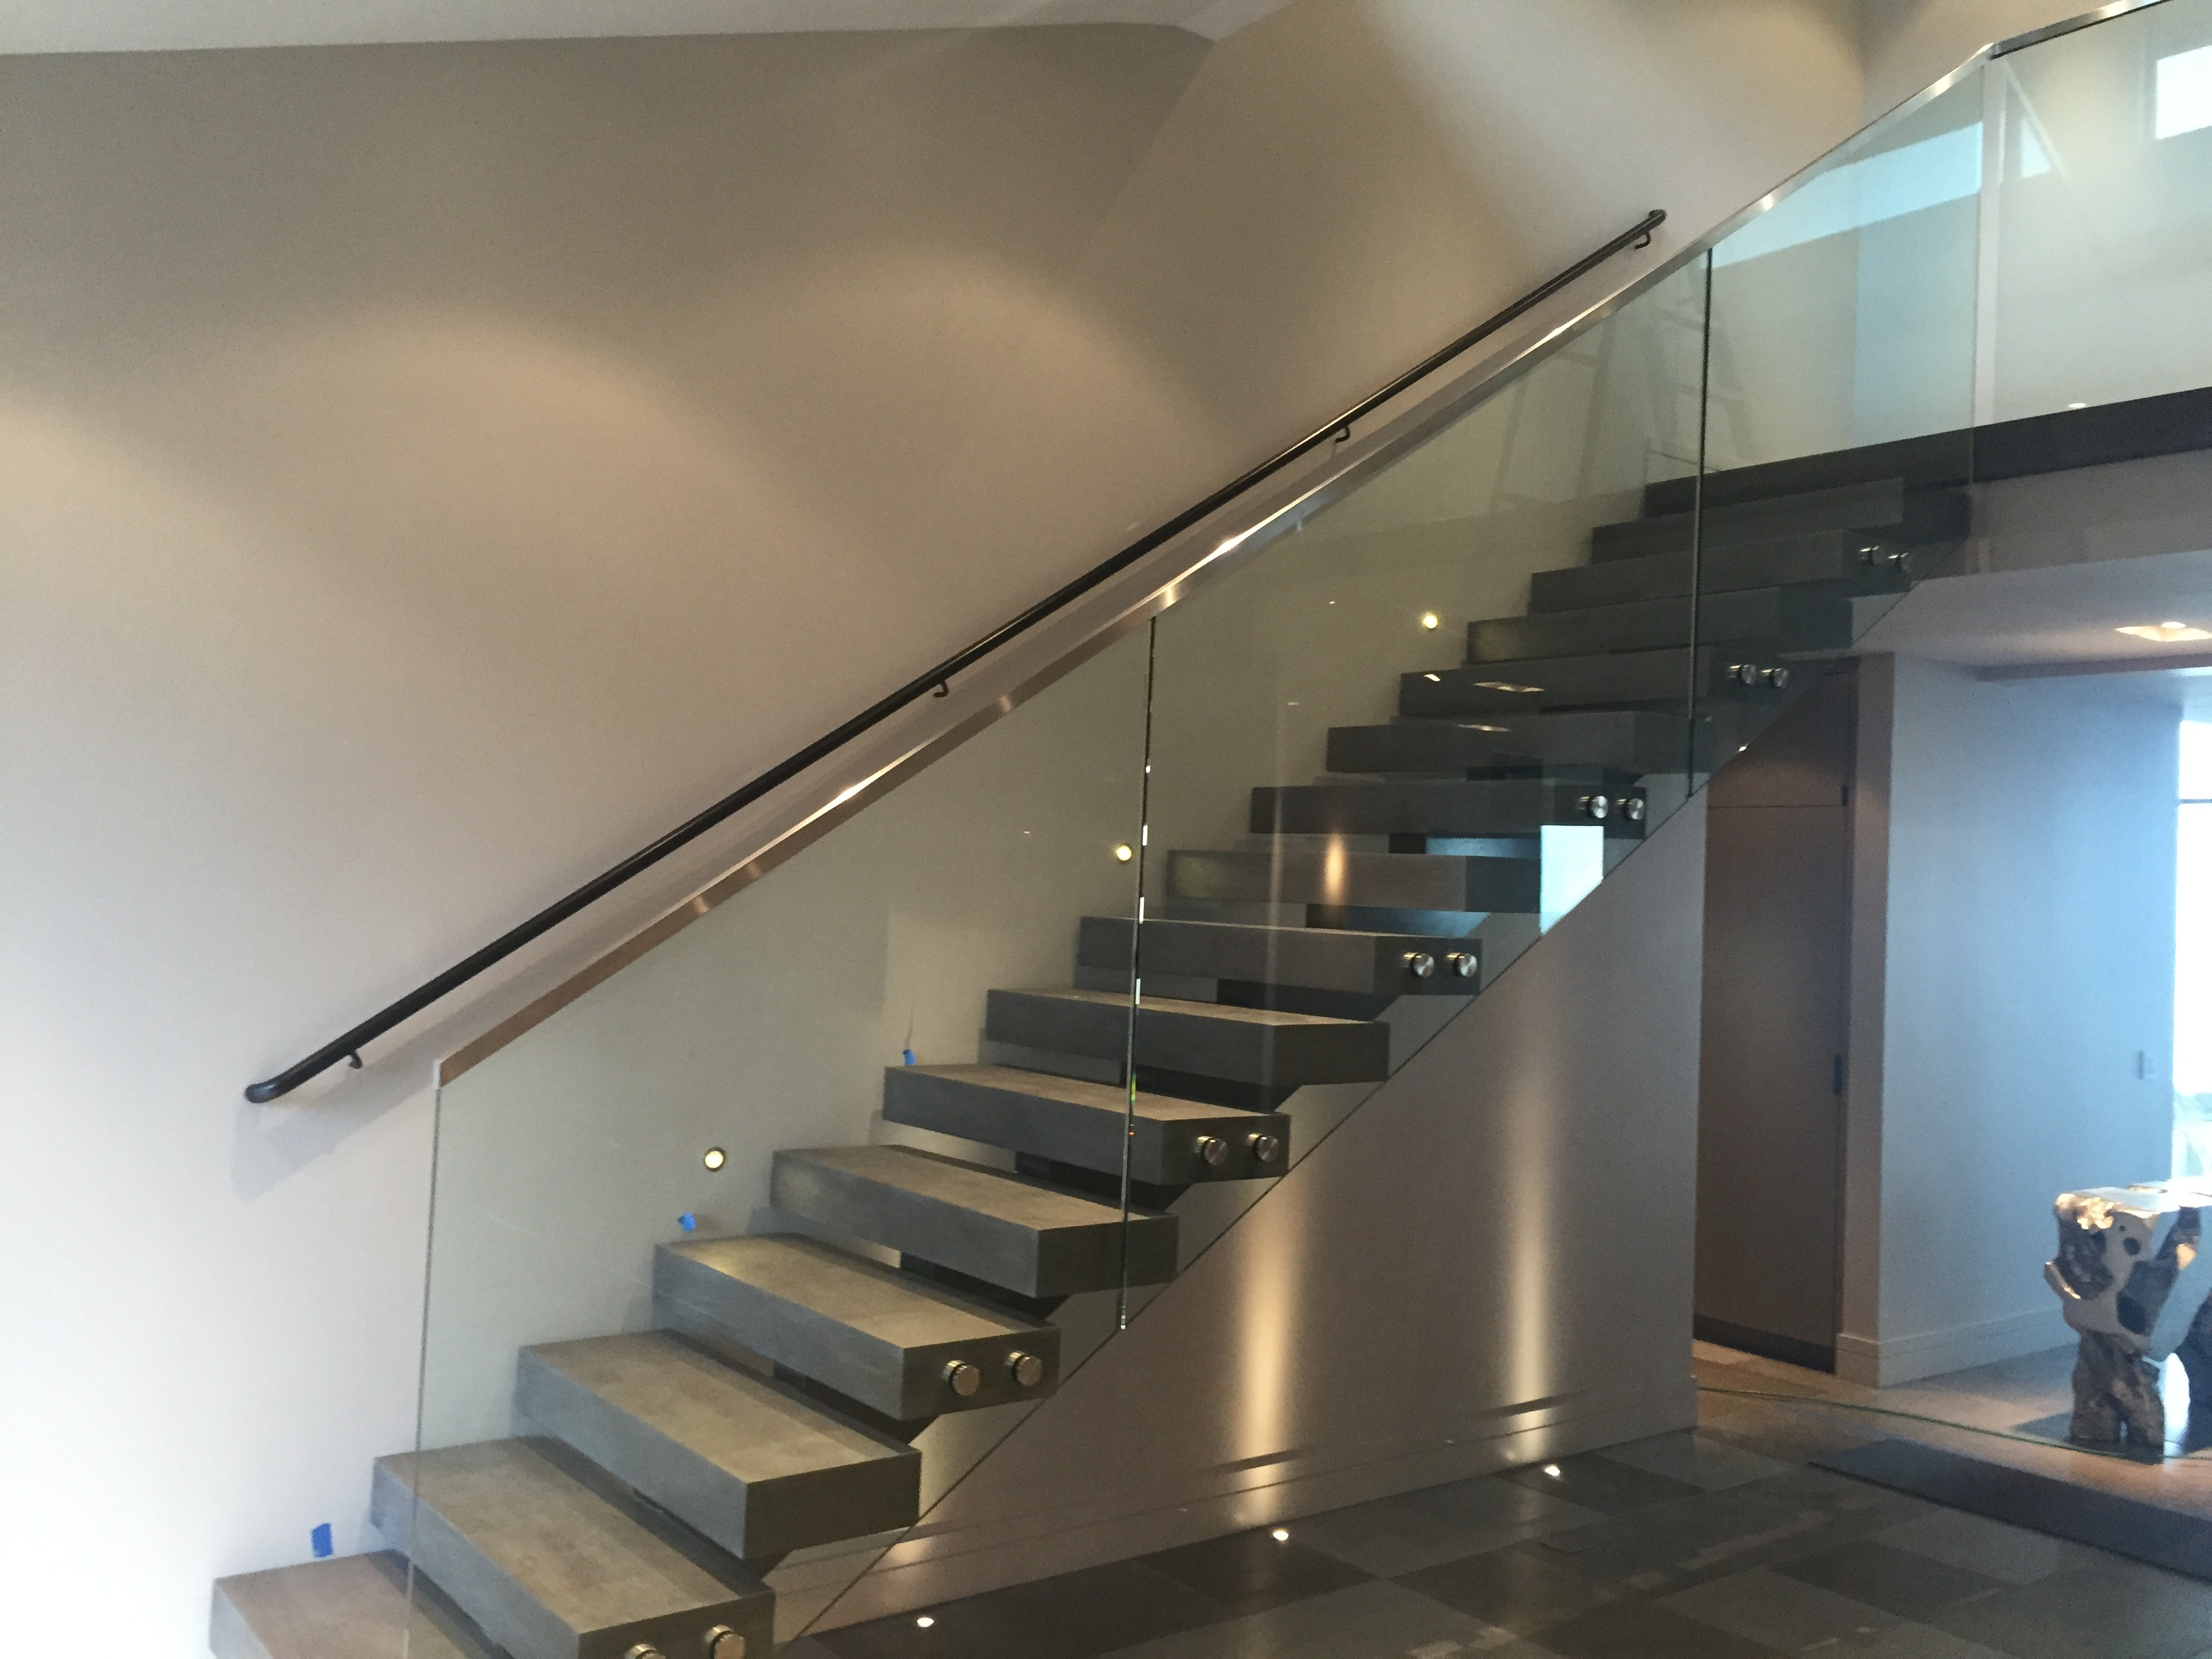 Glass Stair Rail With Standoffs • Ot Glass | Steel Railing With Glass For Stairs